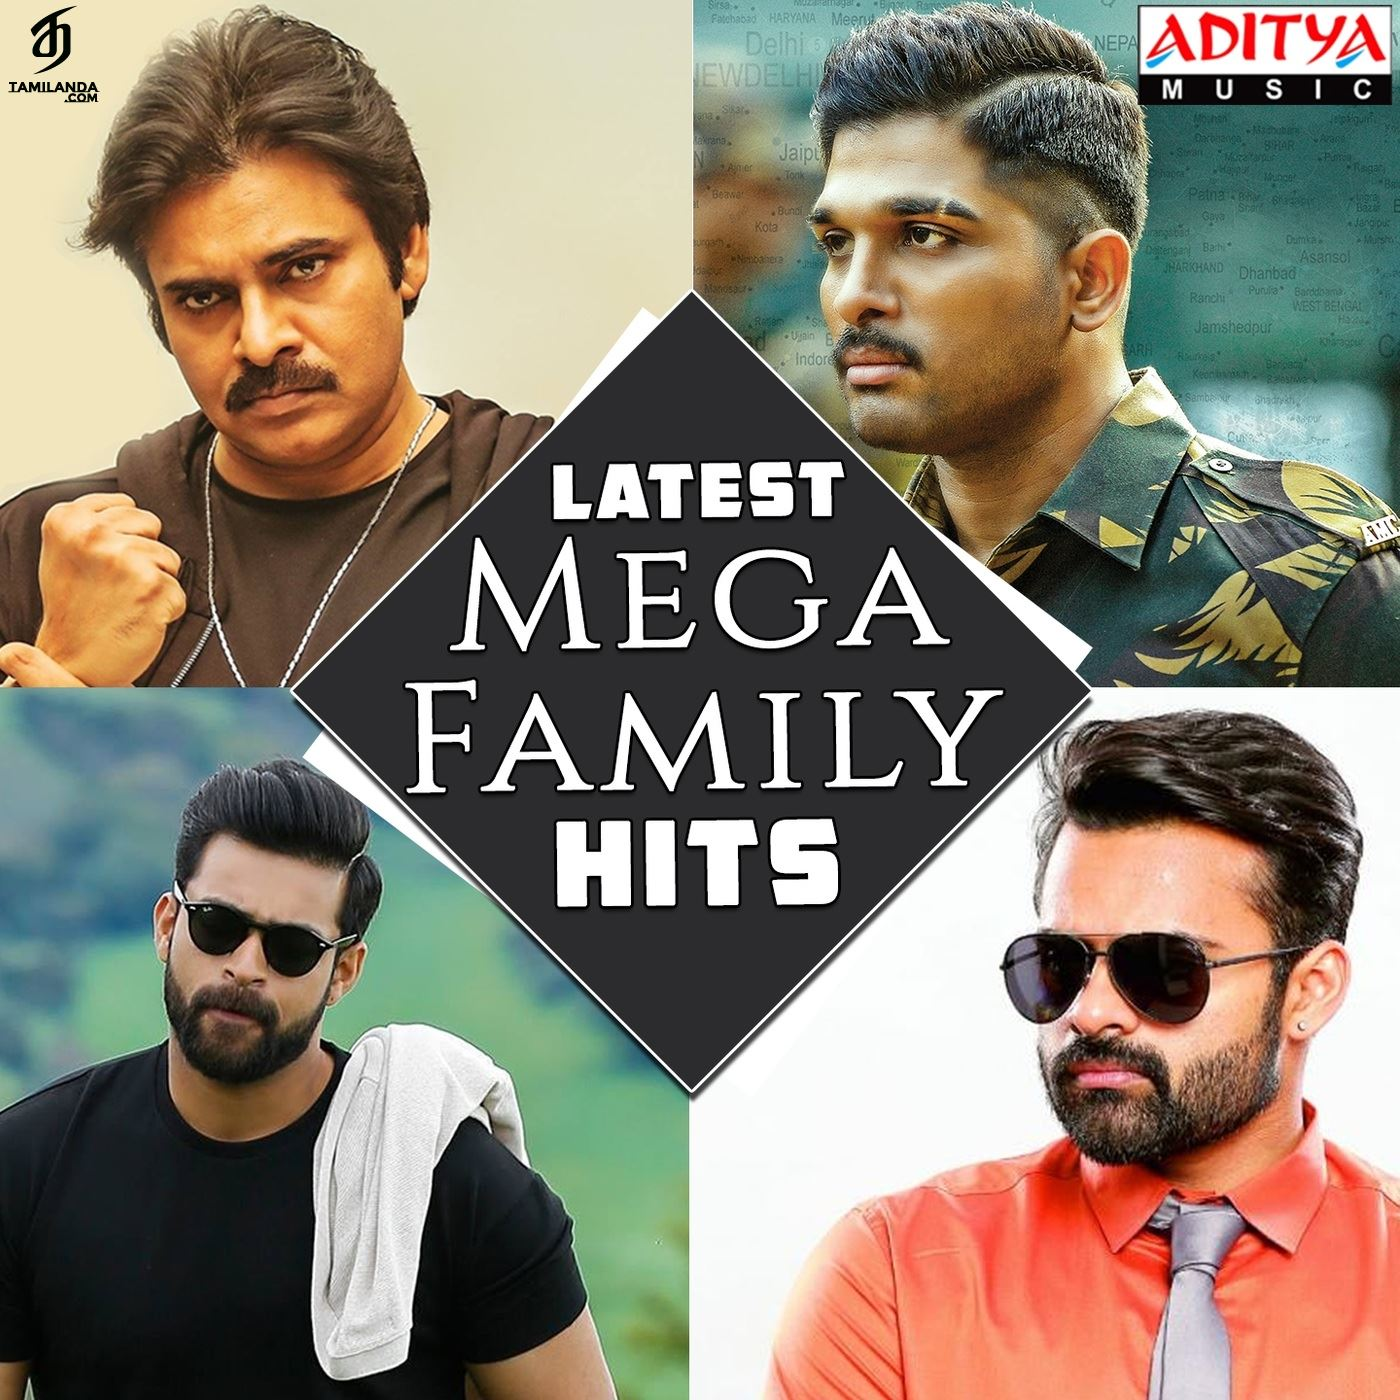 Latest Mega Family Hits (Telugu)